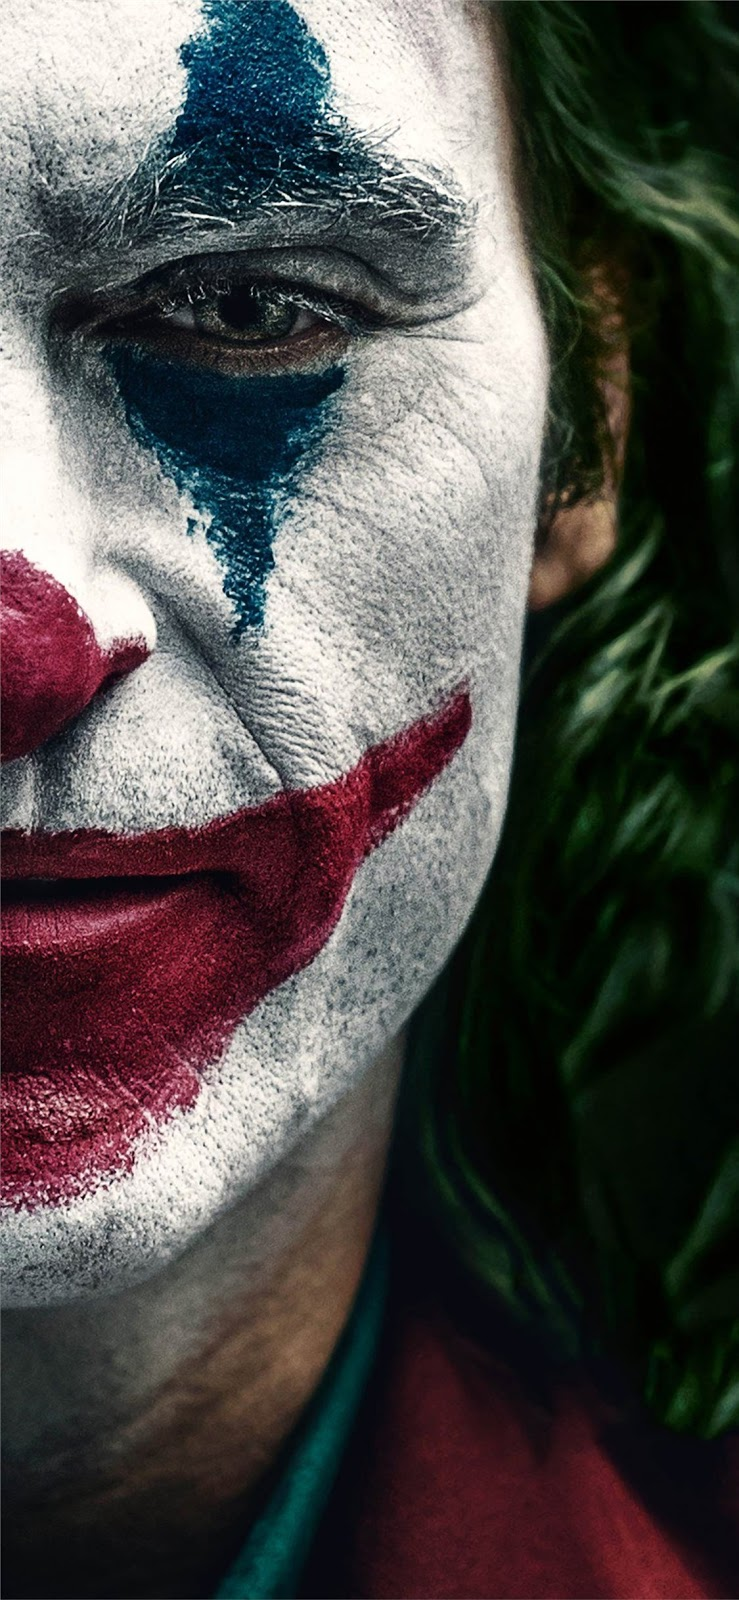 joker-2019-wallpaper-4k-download